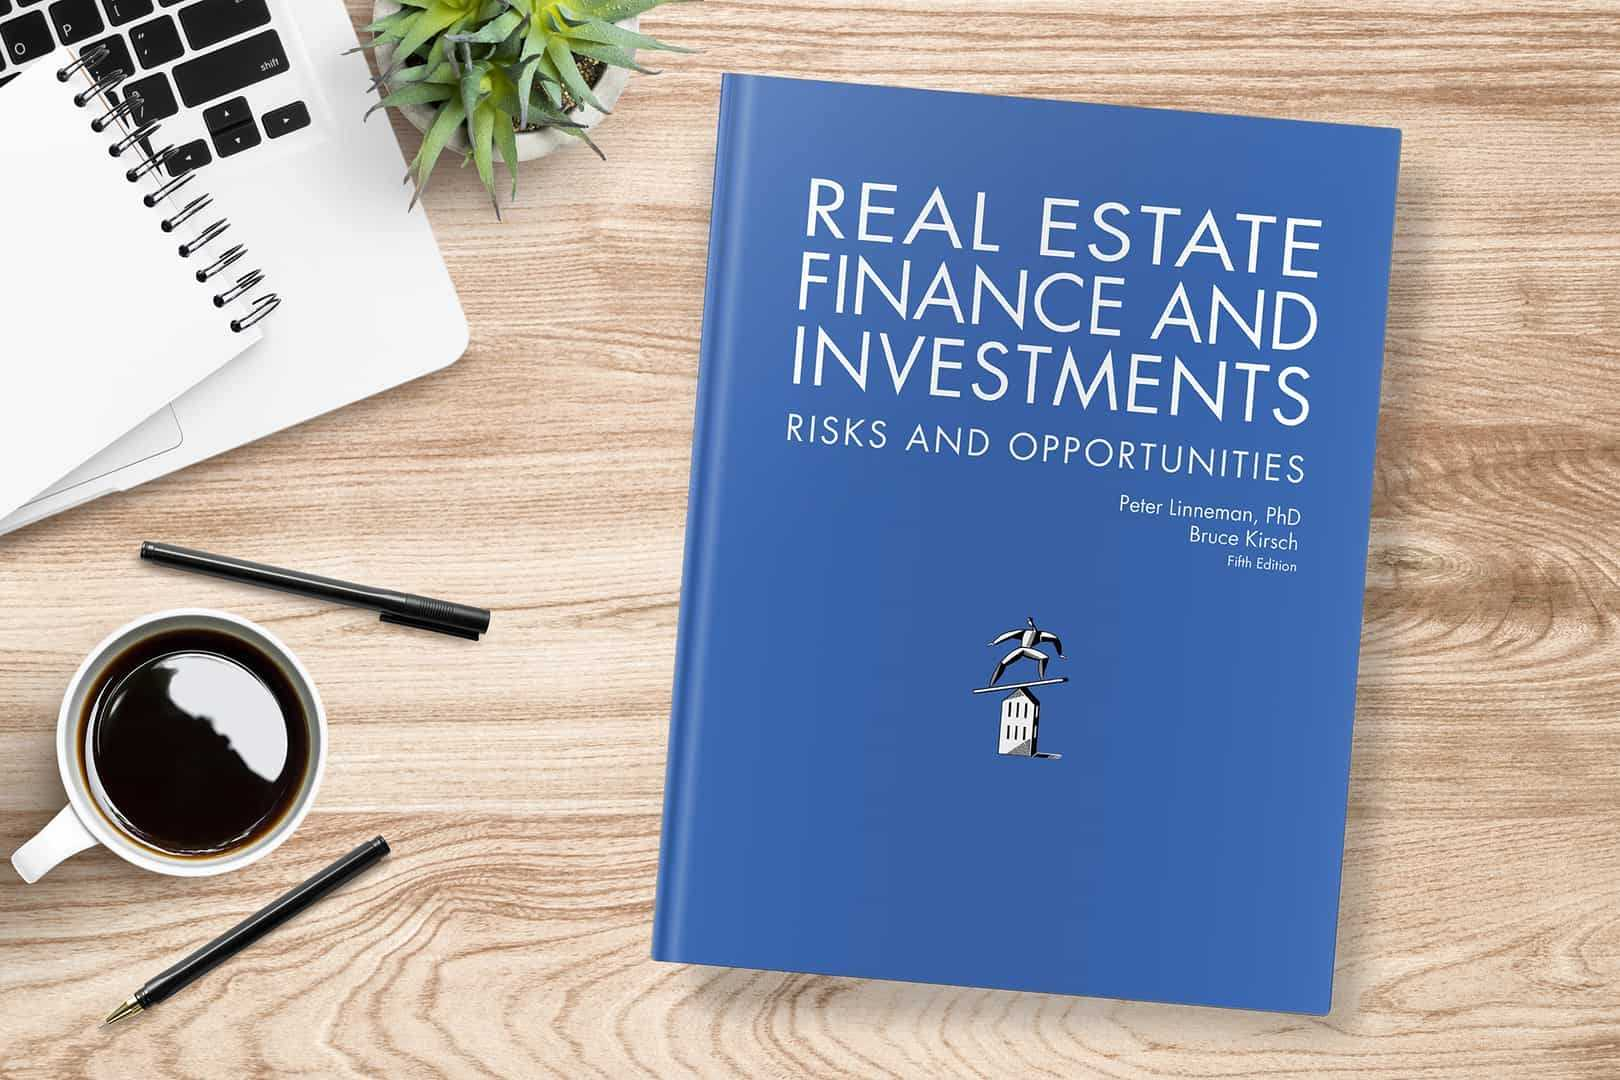 Books On Real Estate Investing Reddit Invest Walls